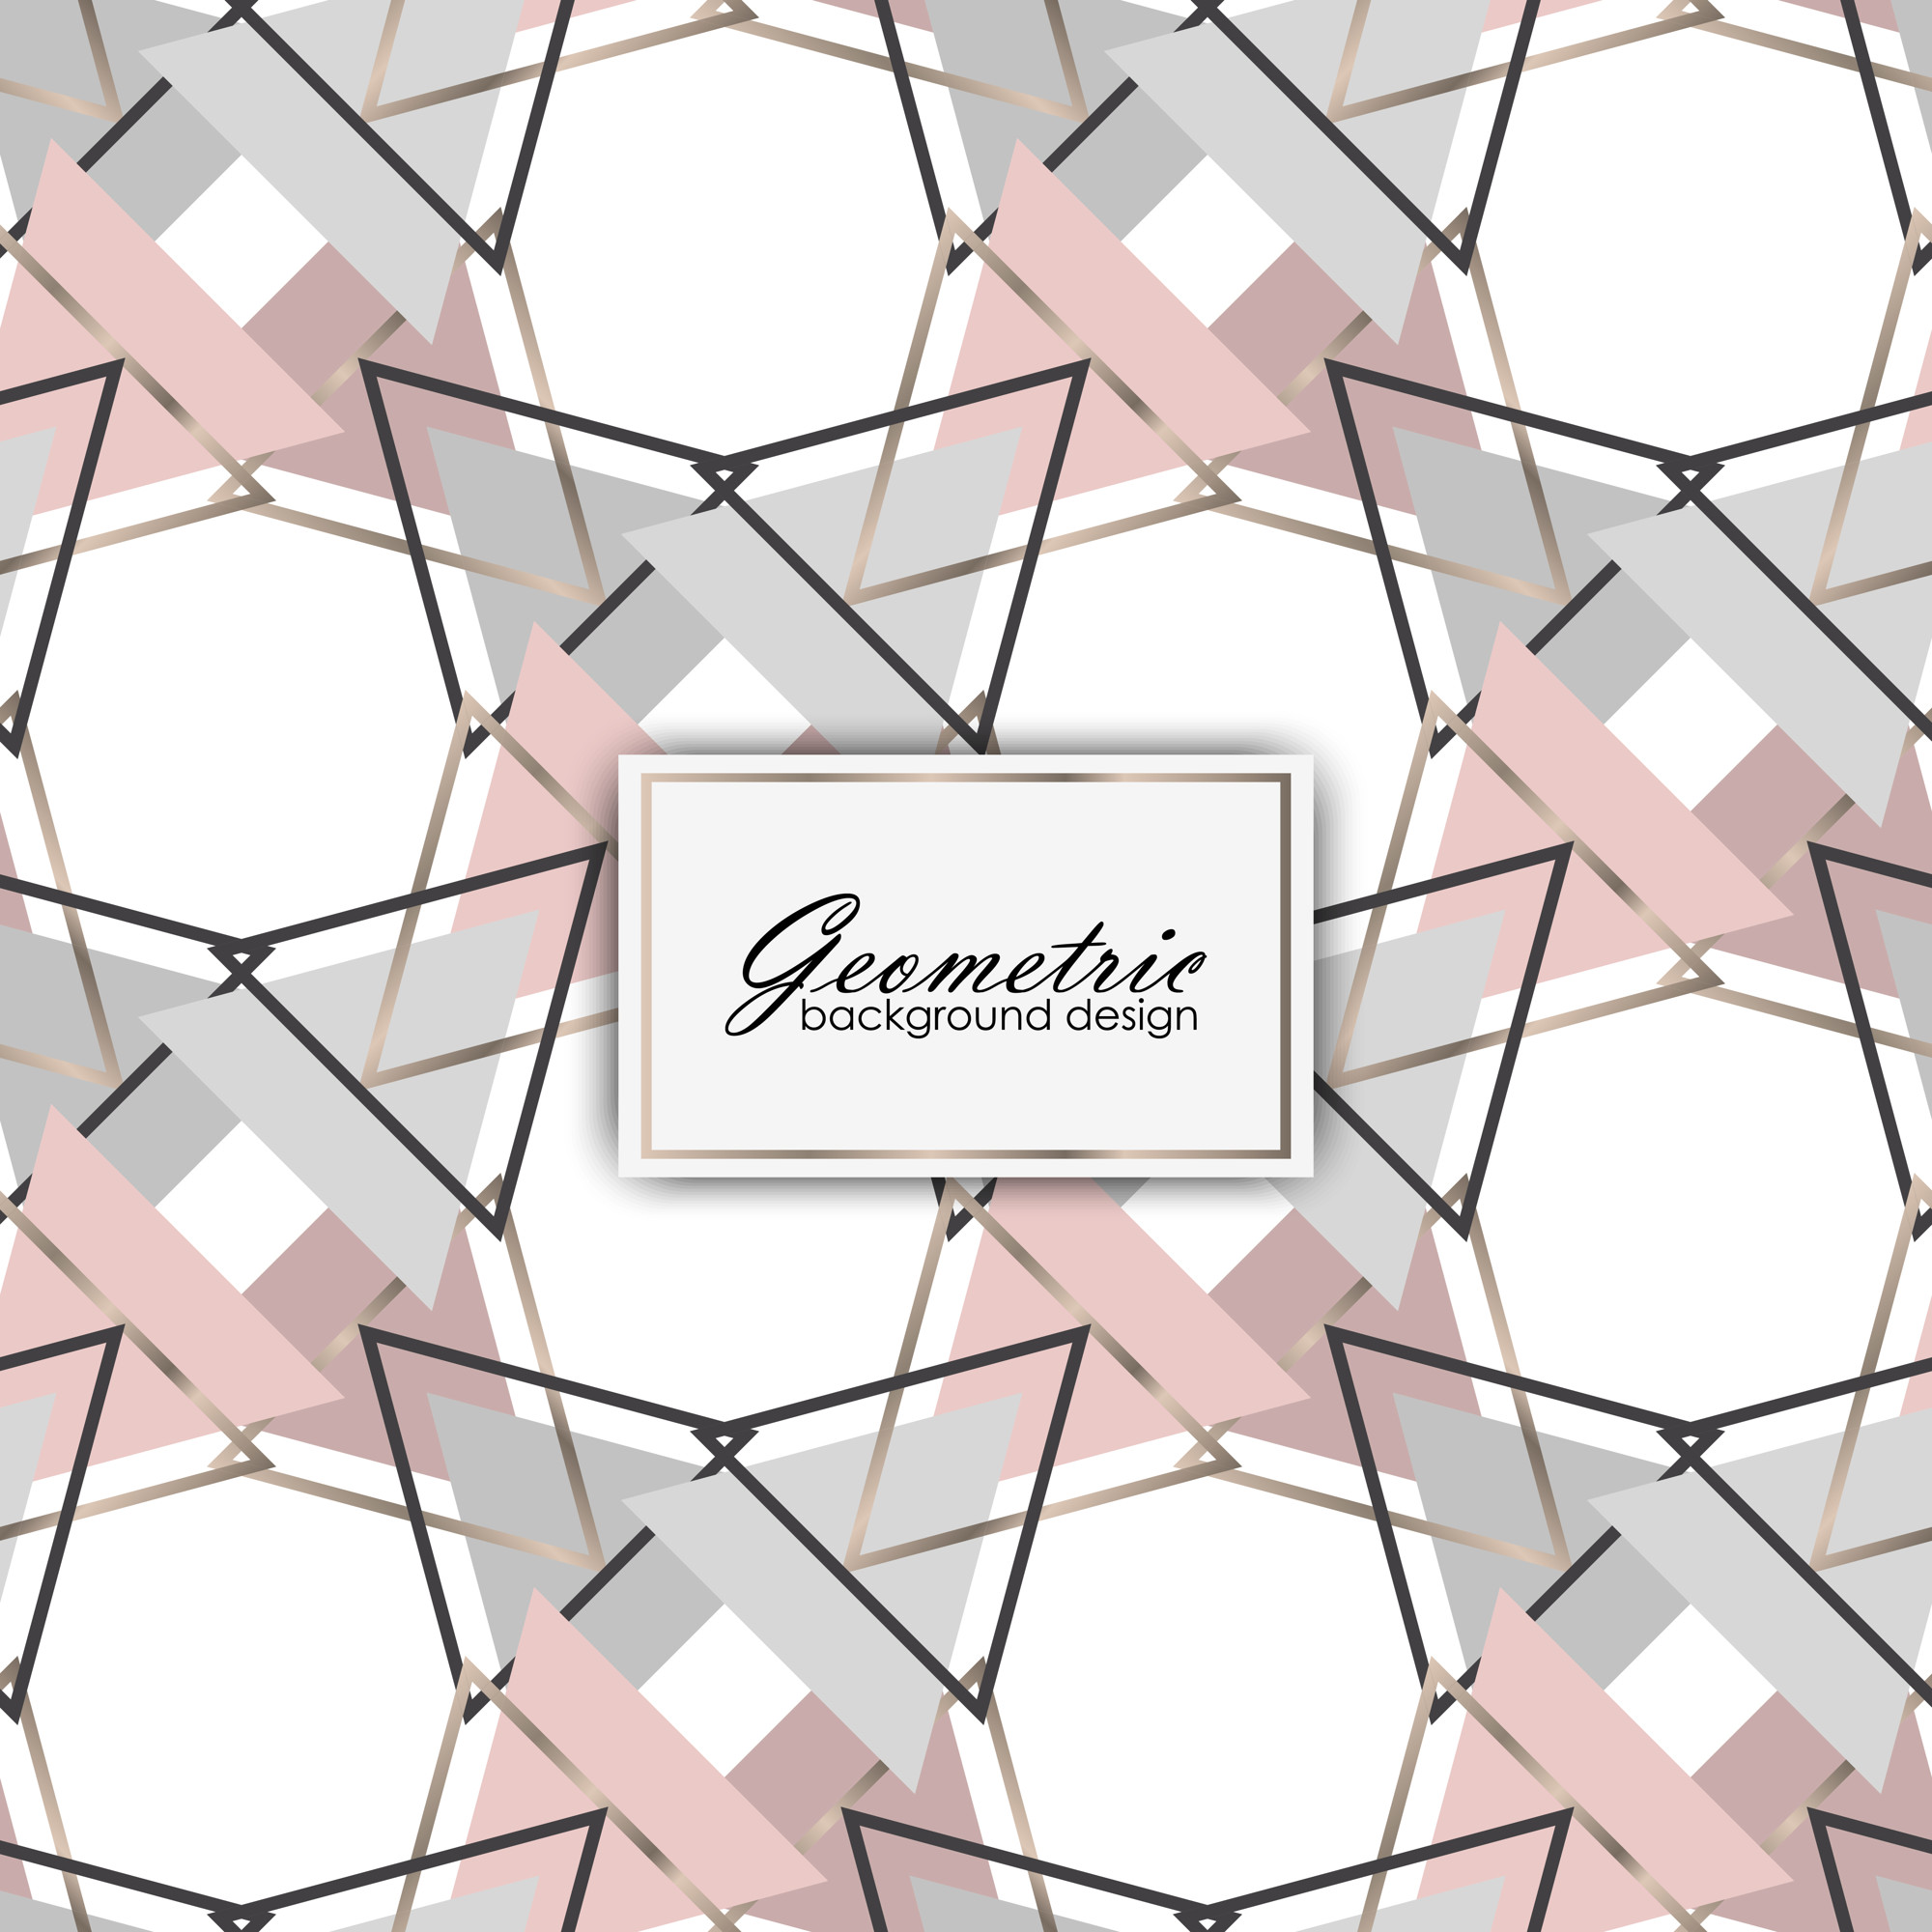 Luxury background design with geometric elements